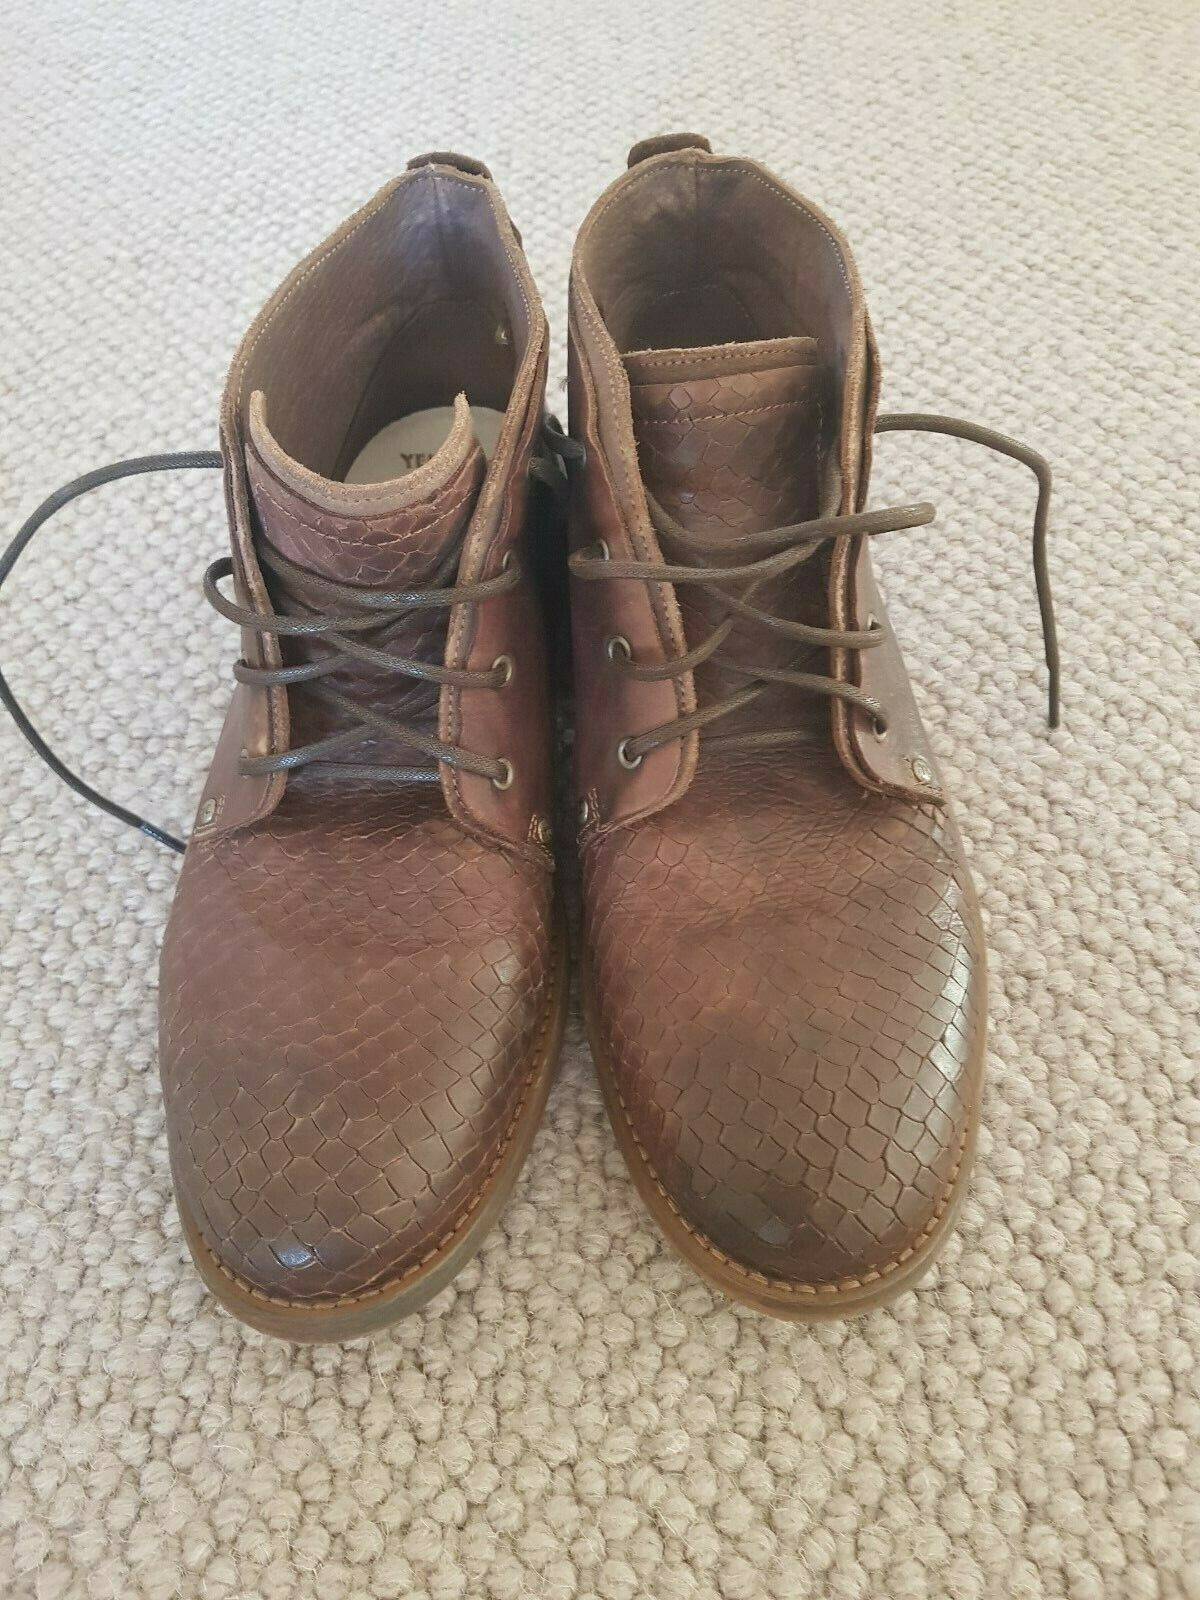 MEN'S BOOTS BY YELLOW CAB SIZE 7